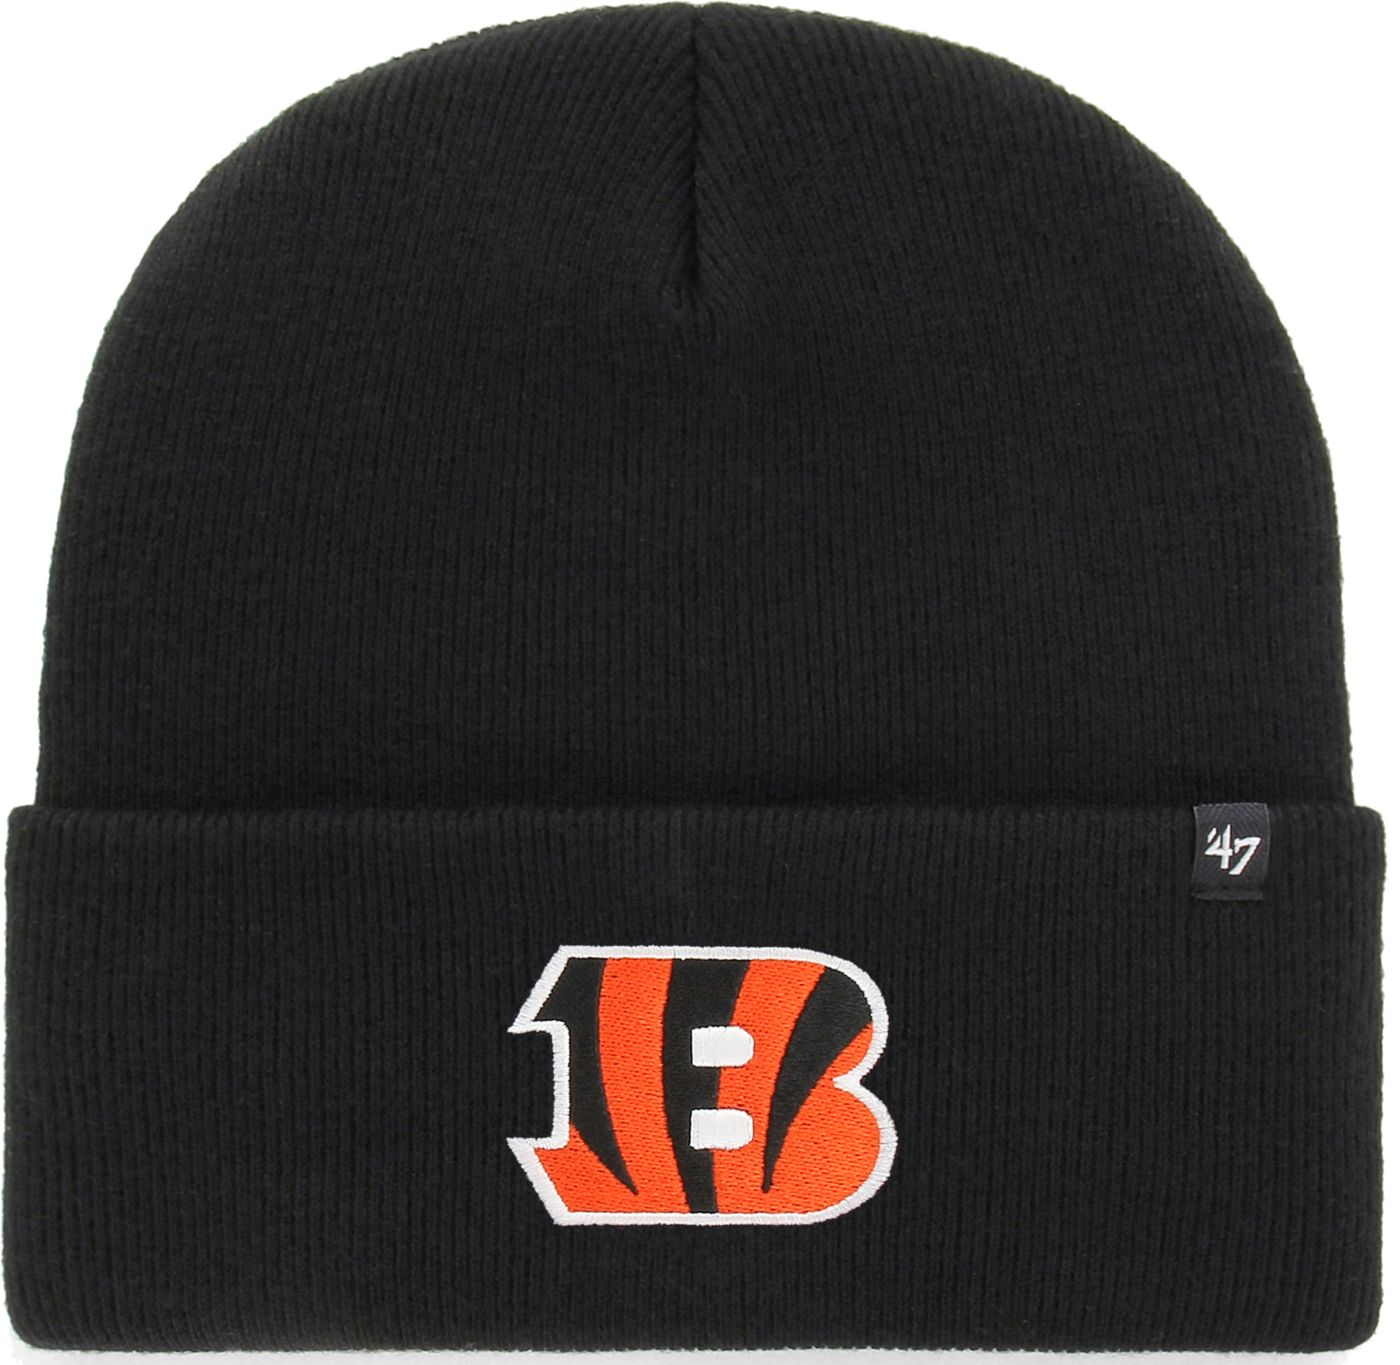 '47 Men's Cincinnati Bengals Carhartt Black Knit Hat